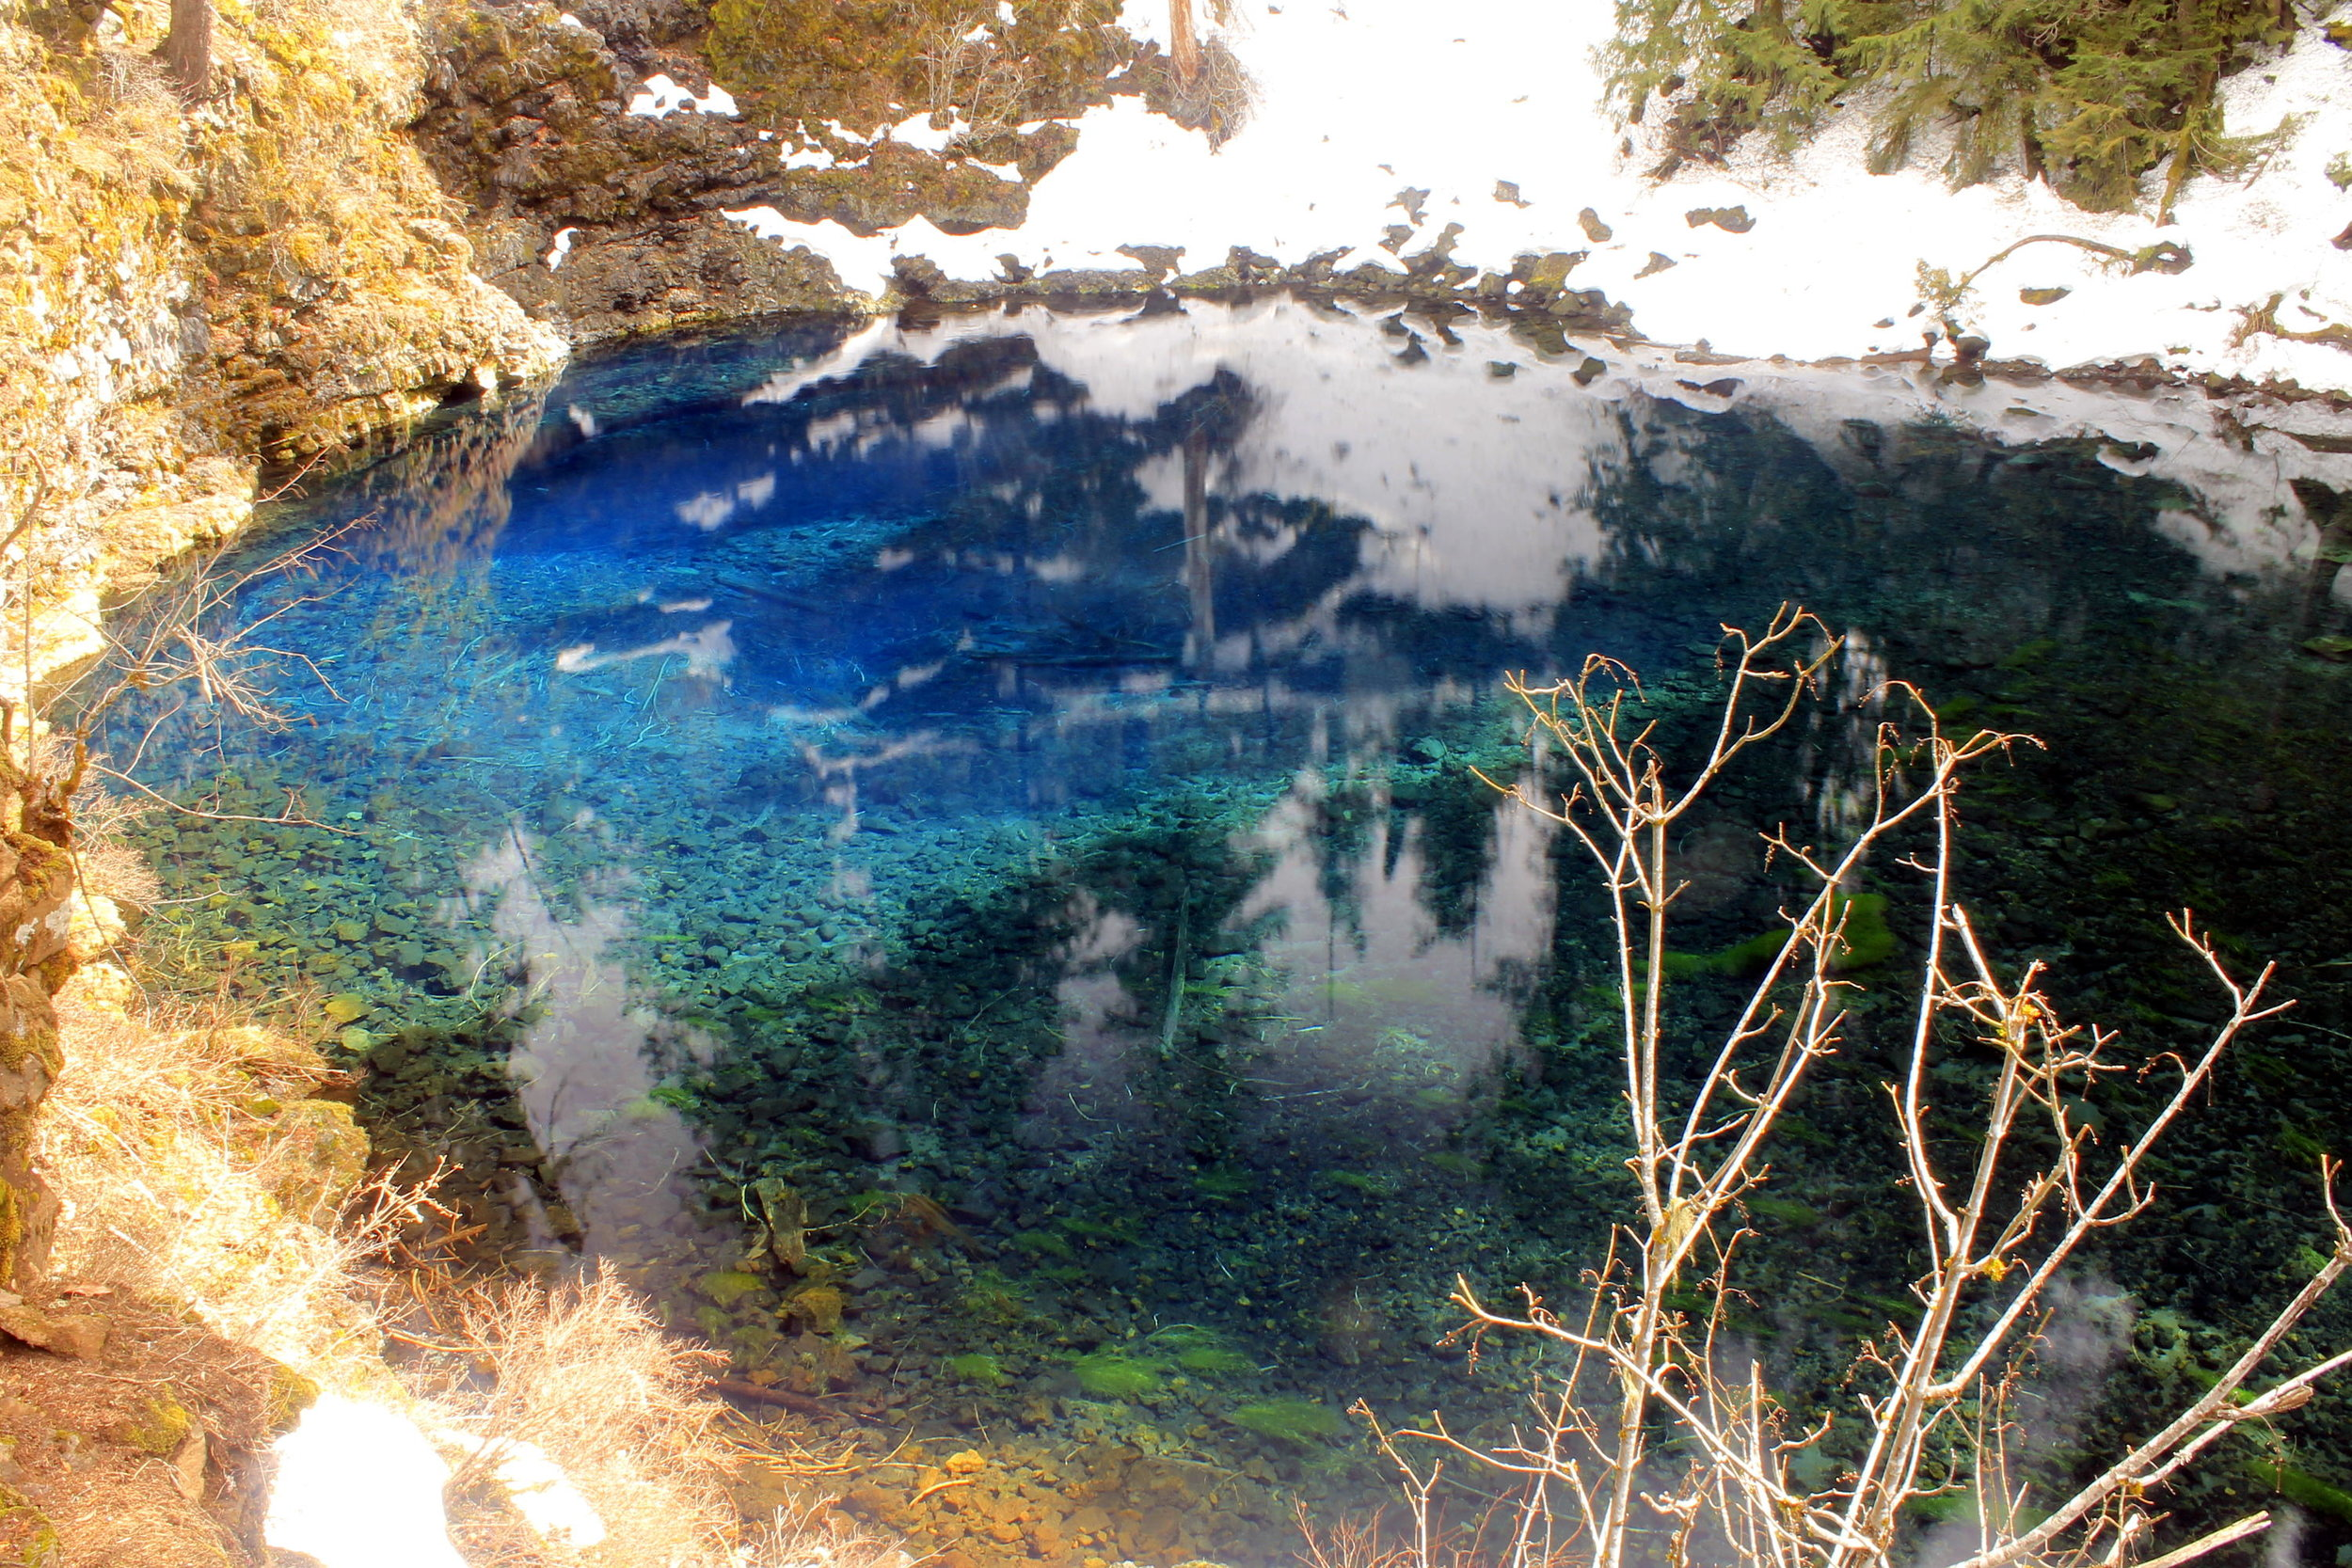 Blue Pool in late March